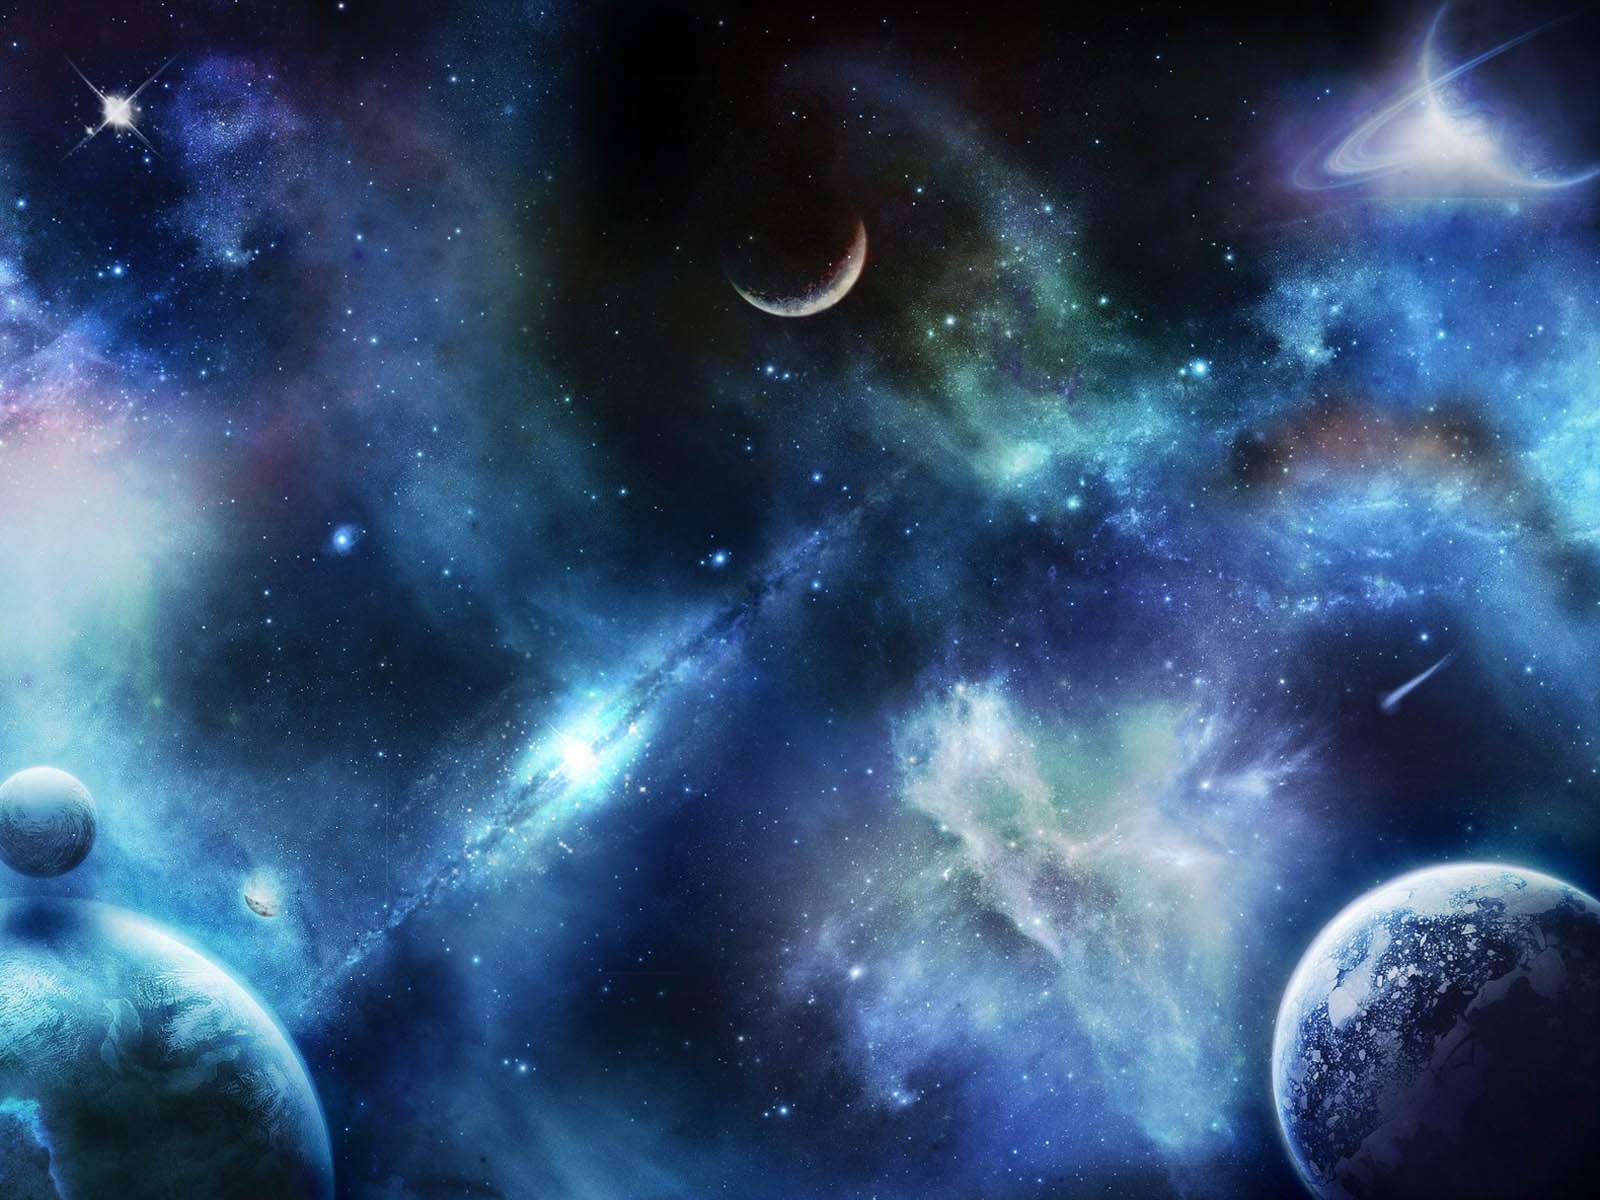 50] 3D Outer Space Wallpaper on WallpaperSafari 1600x1200